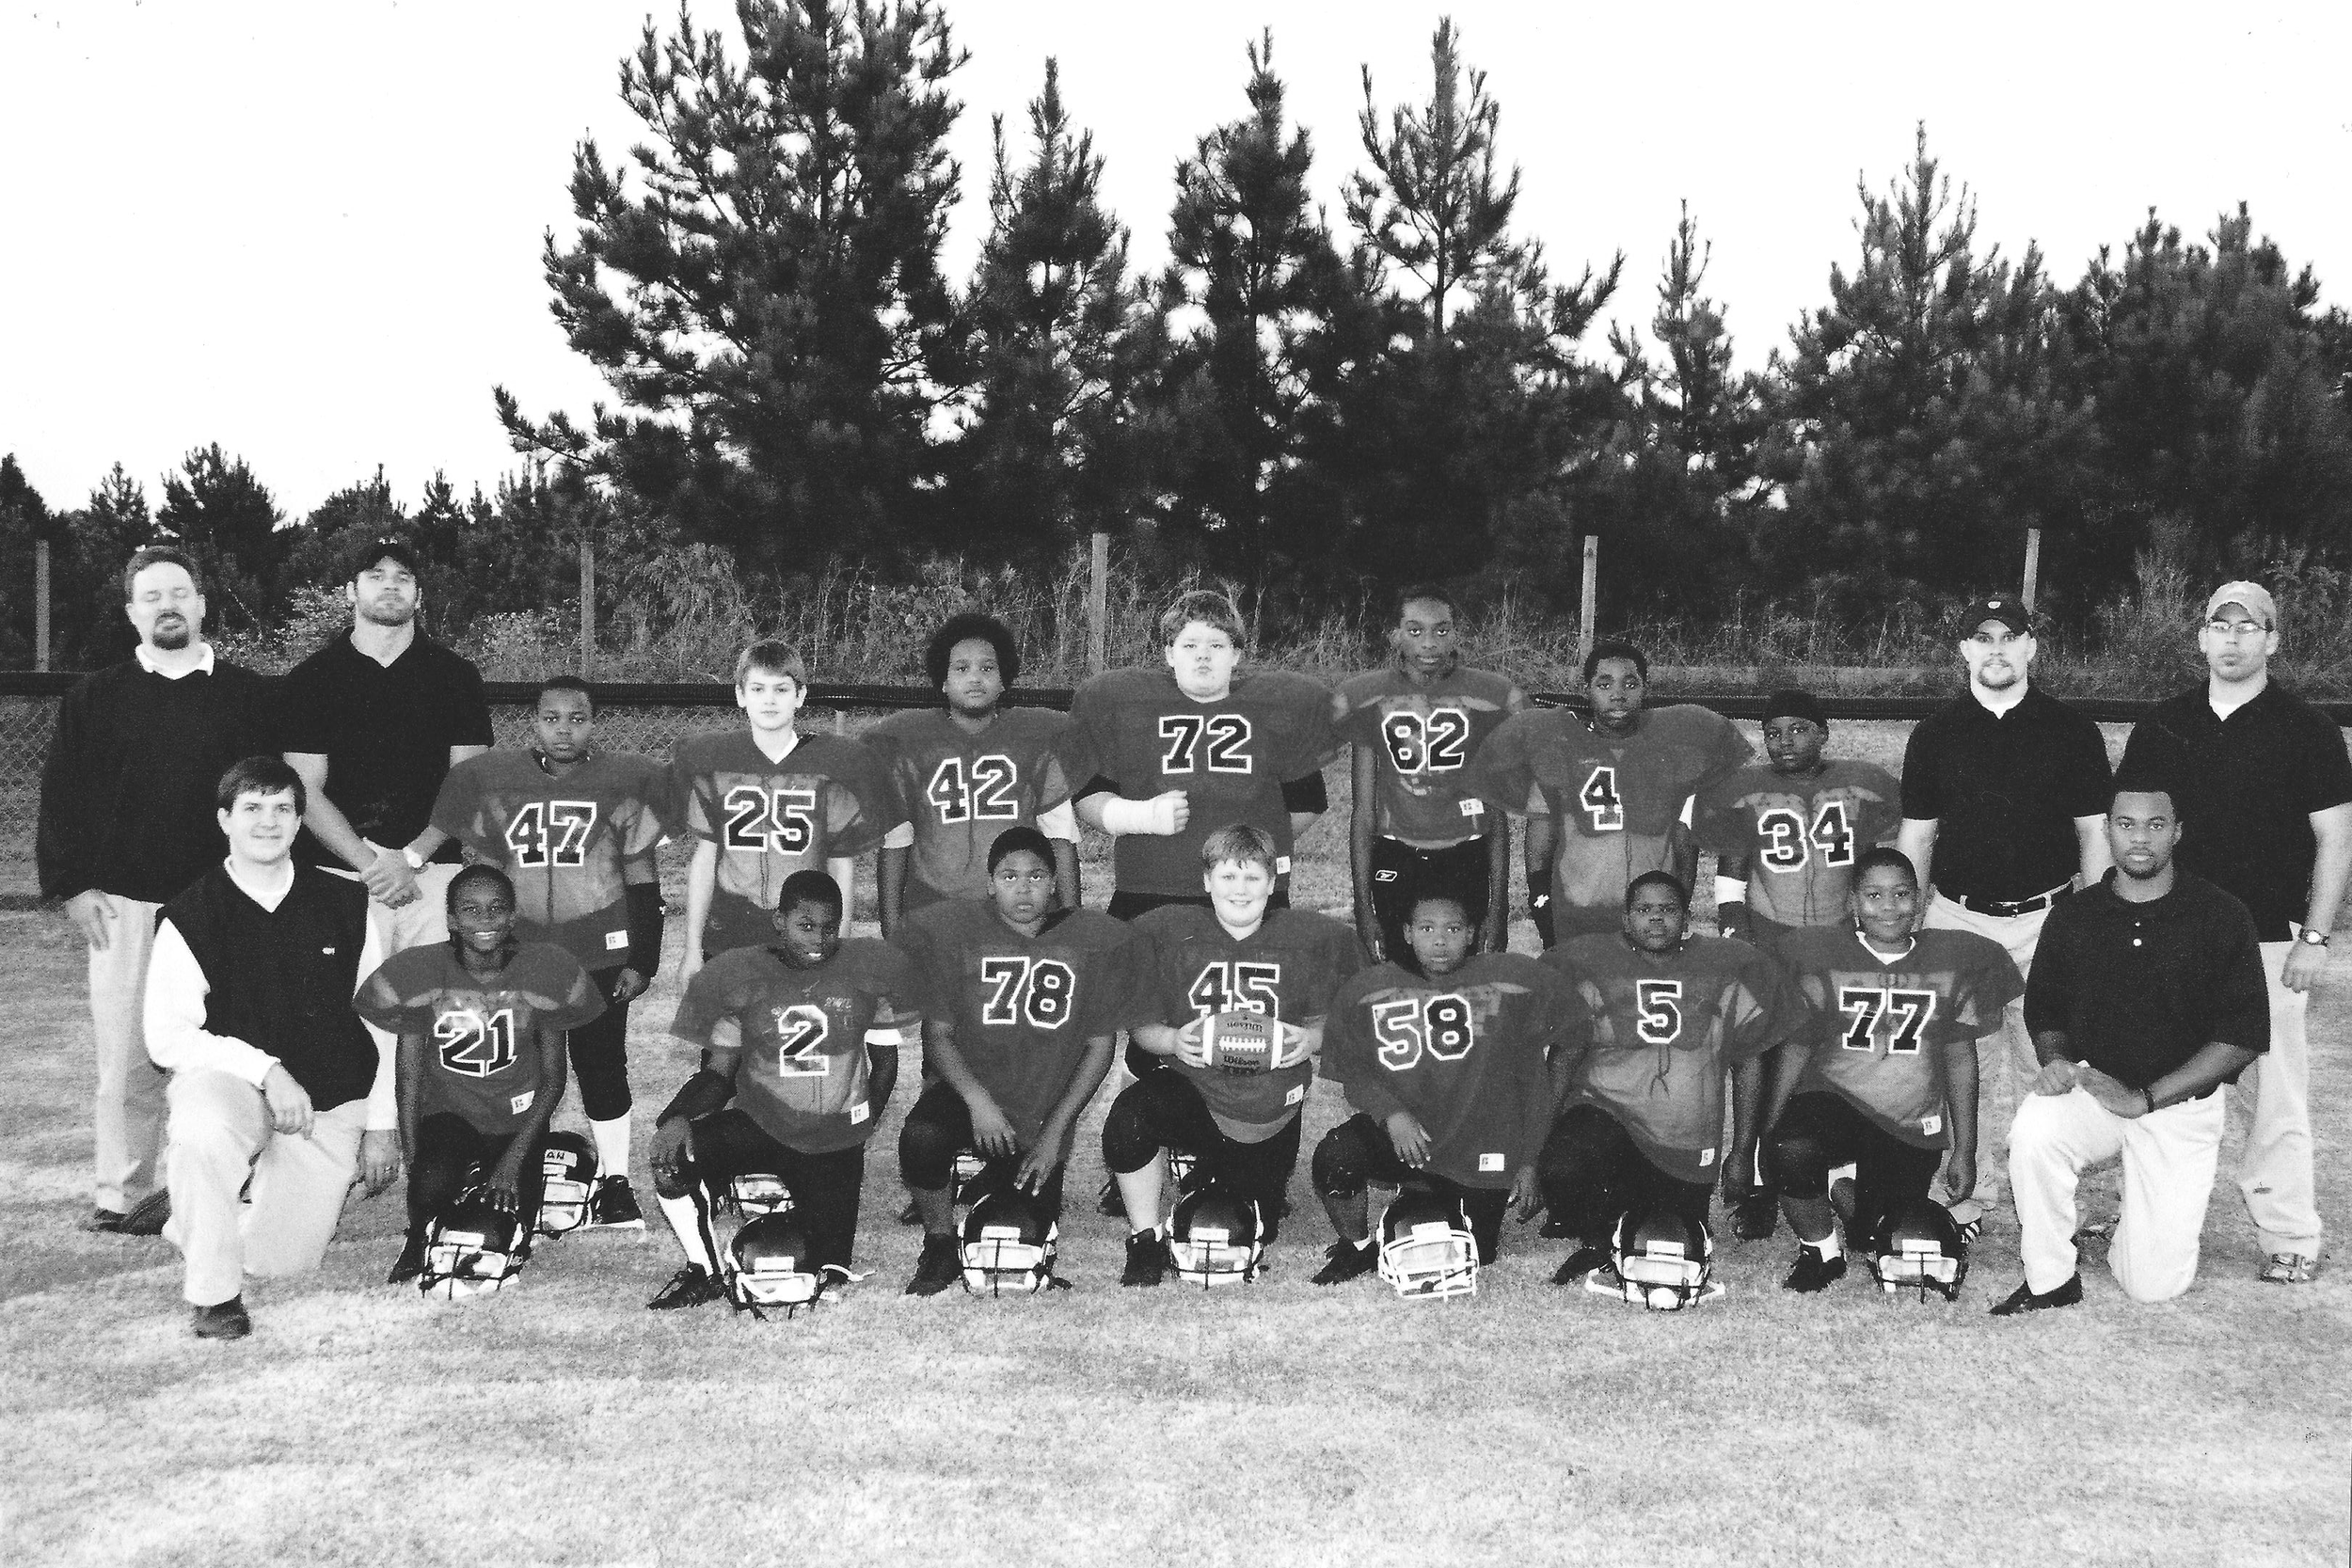 """2003 - Downtown Ministries began as an initiative of Redeemer Presbyterian Church to better reach children in the community. Redeemer started one football team called the """"Falcons"""" and a legacy began."""